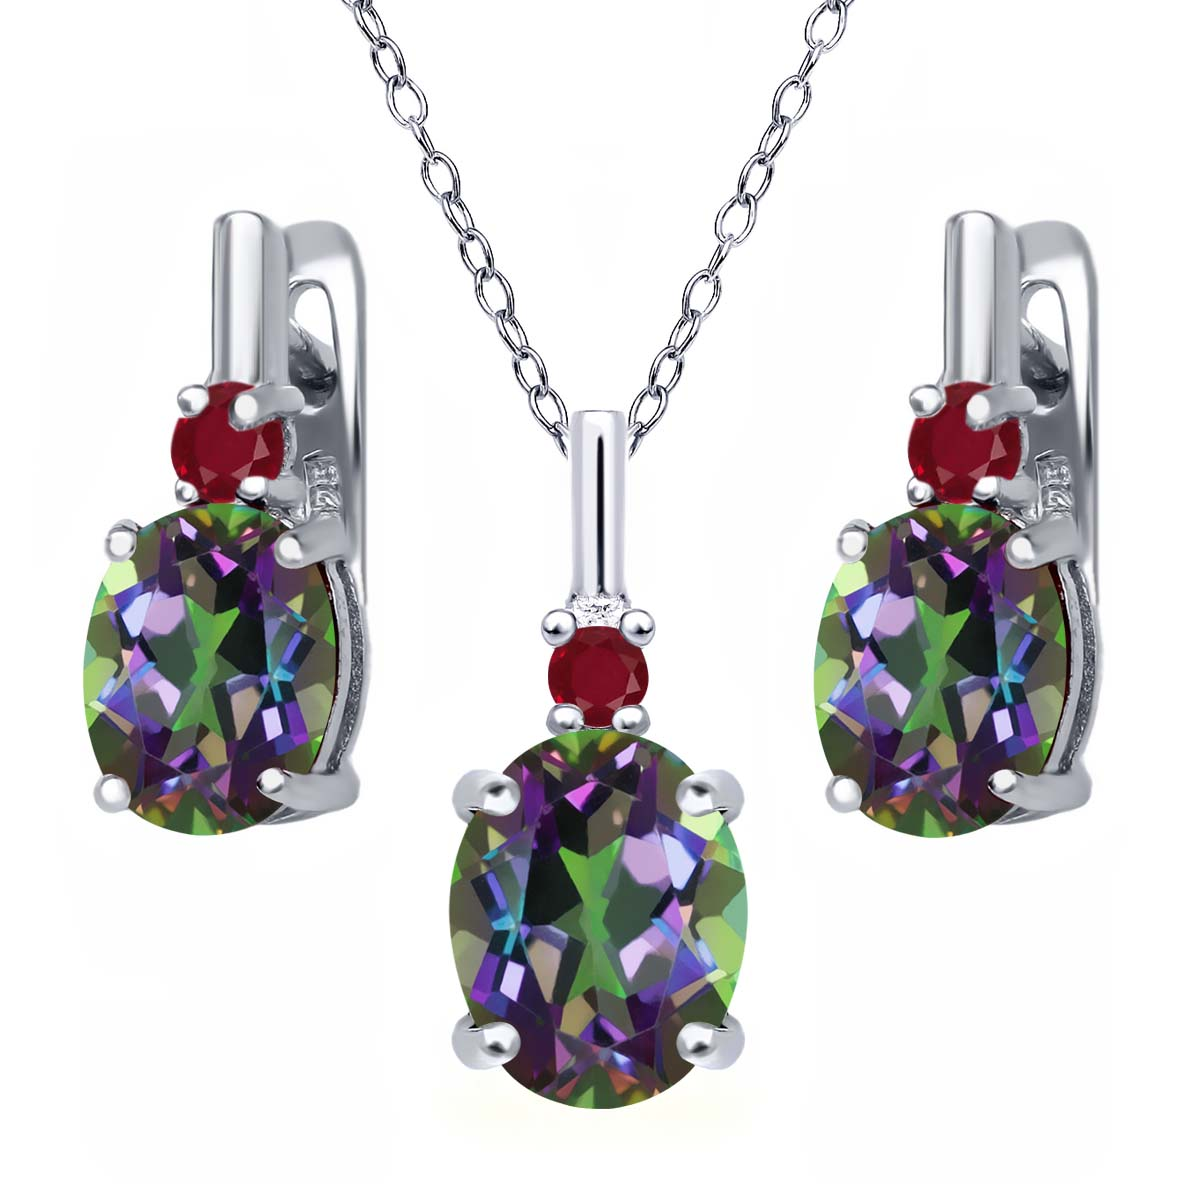 7.02 Ct Oval Green Mystic Topaz Red Ruby 925 Silver Pendant Earrings Set by